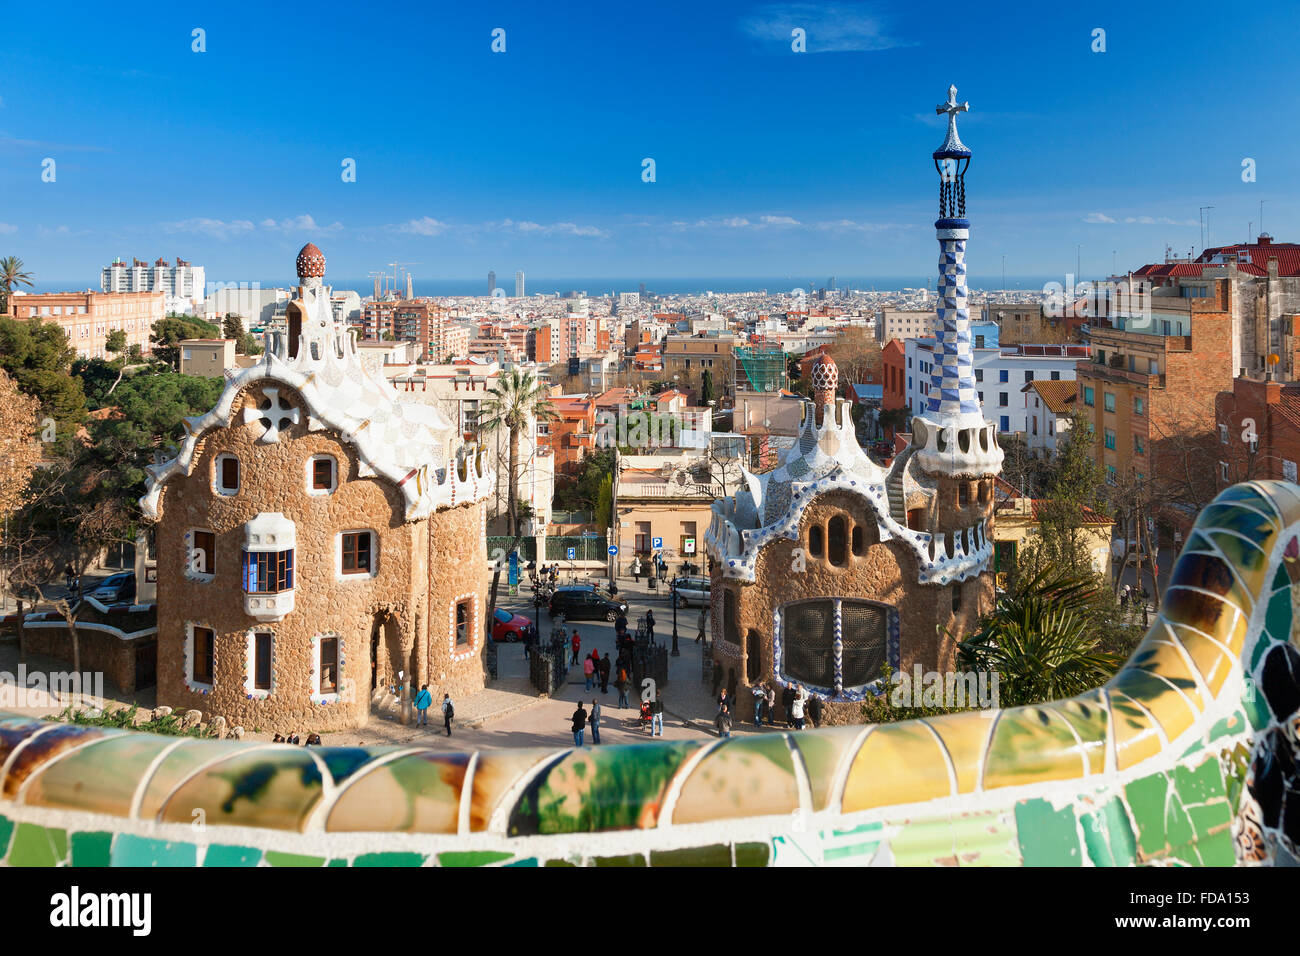 Barcelona skyline from Park Guell - Stock Image